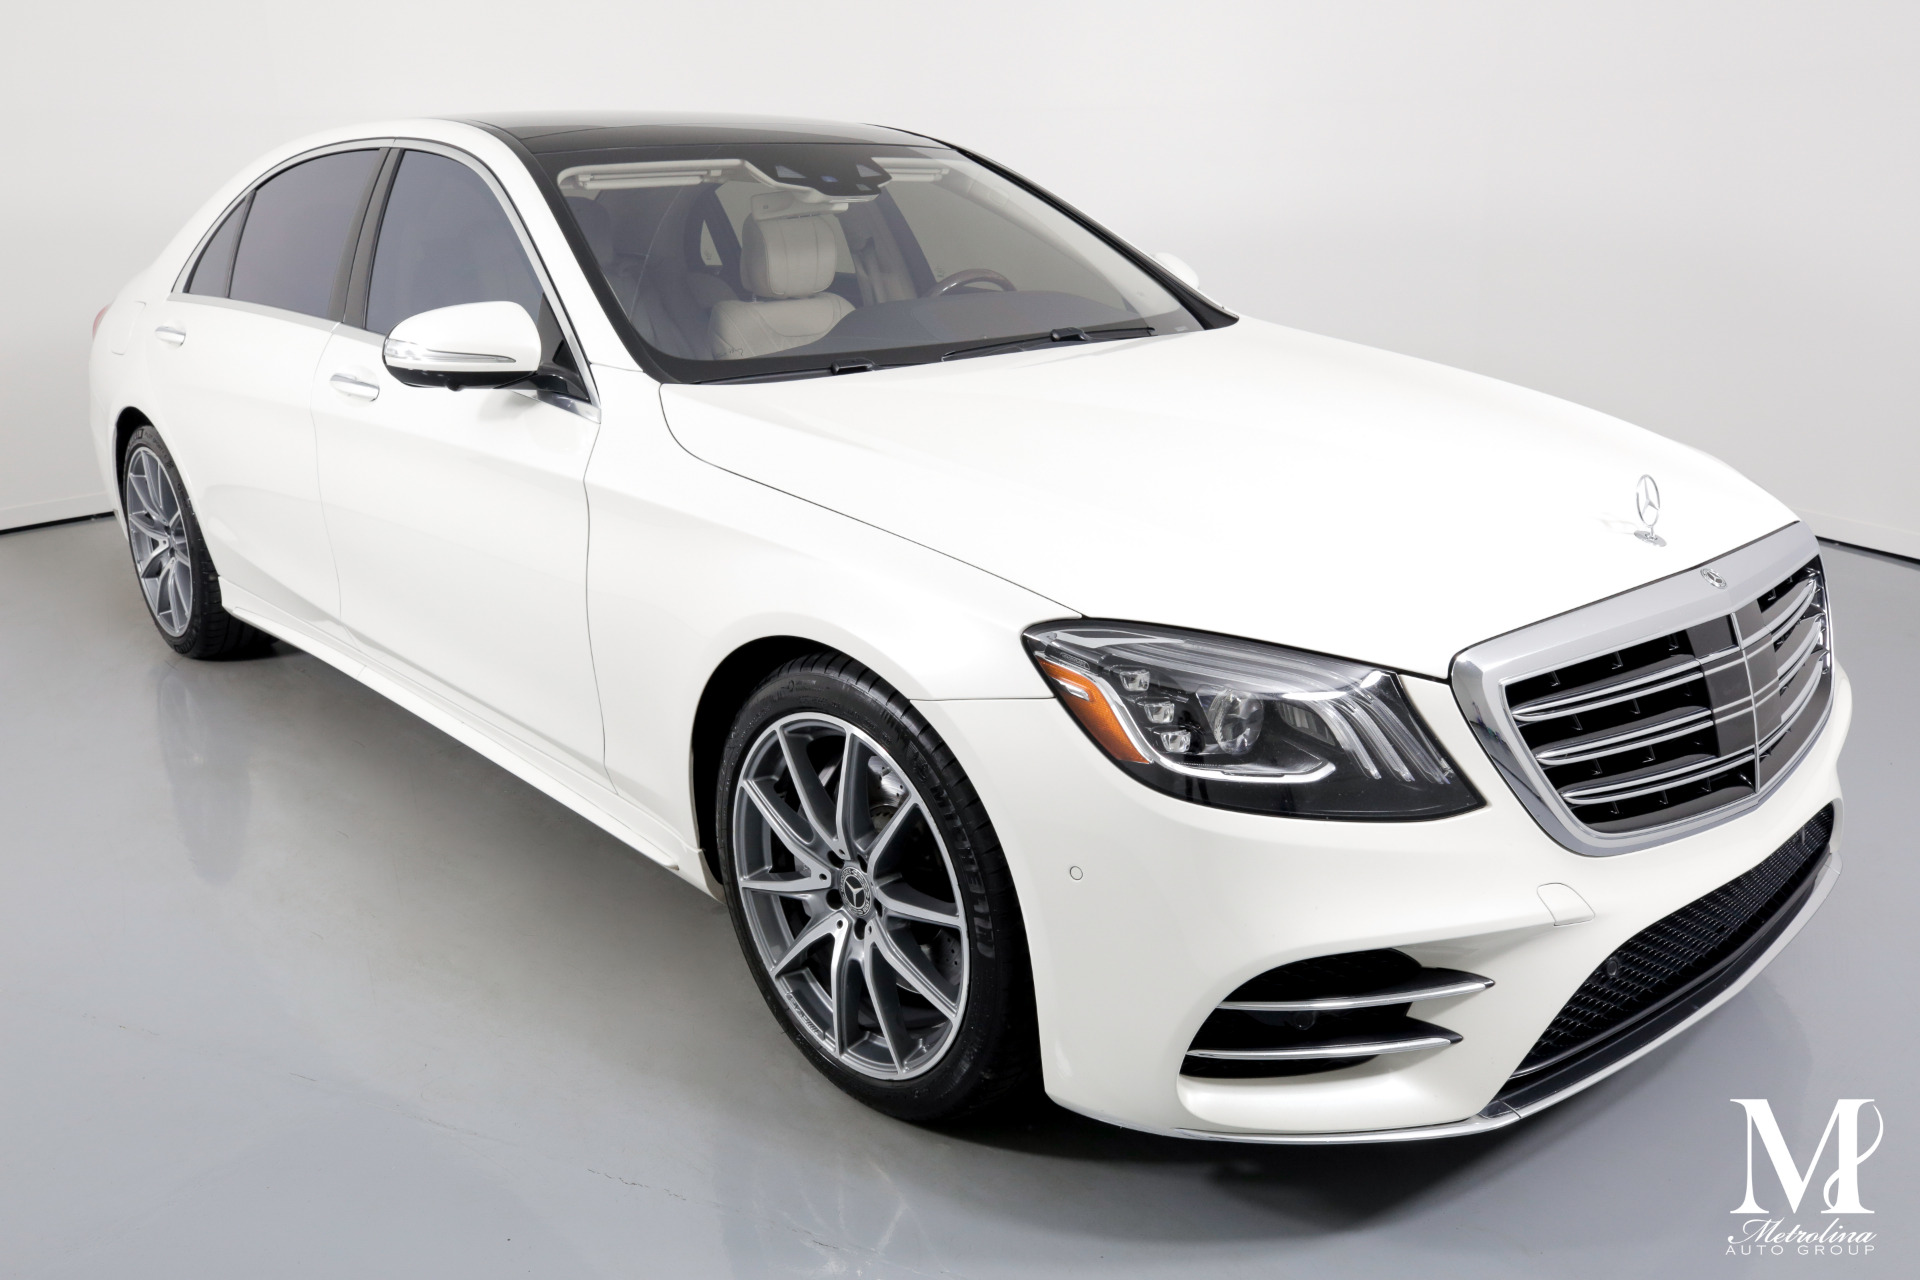 Used 2018 Mercedes-Benz S-Class S 560 4dr Sedan for sale Sold at Metrolina Auto Group in Charlotte NC 28217 - 2